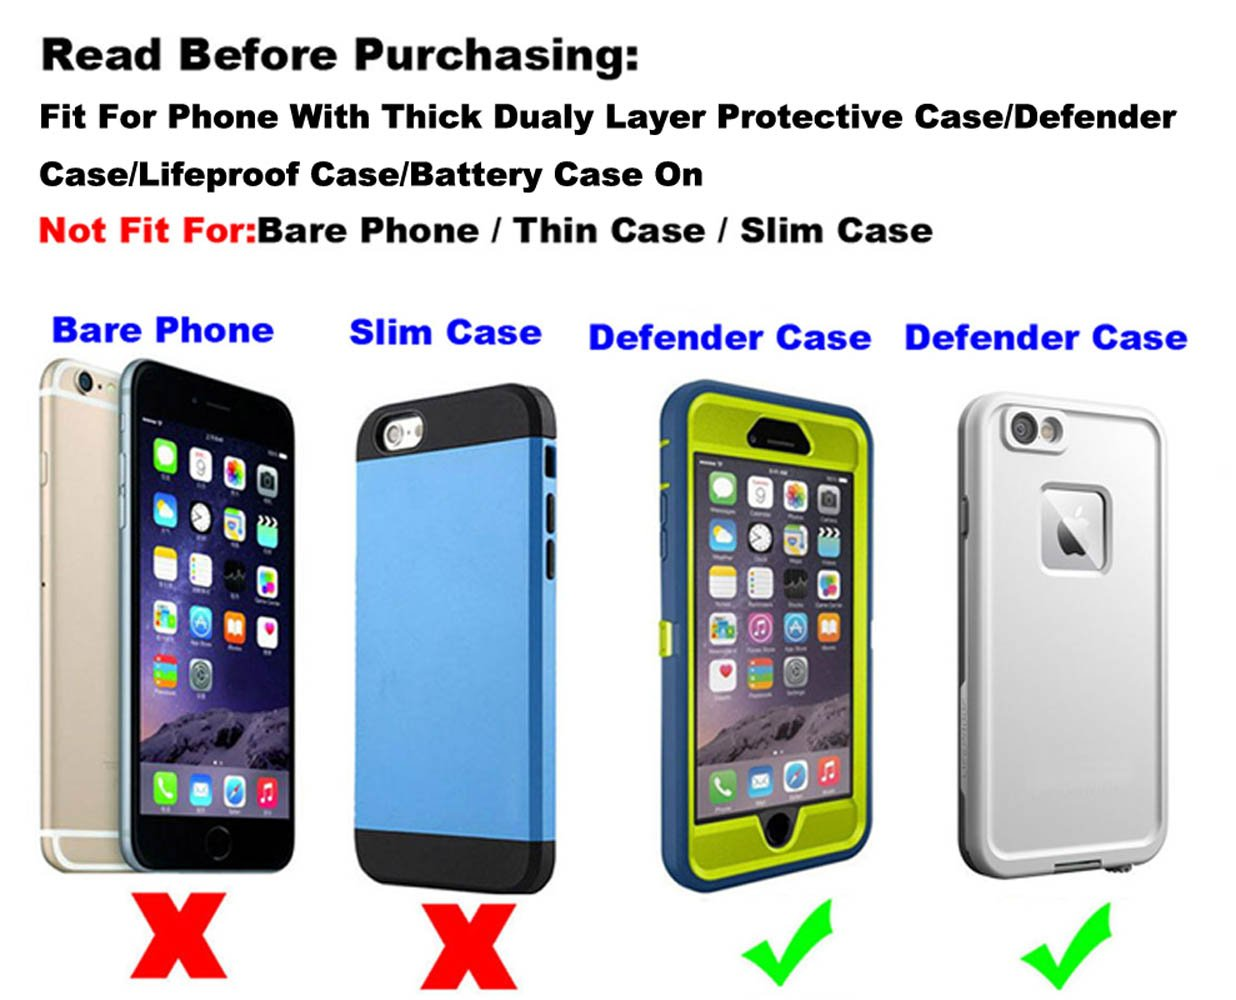 Yuzihan Holster Fit for iPhone 8 Plus 7 Plus 6 Plus Belt Holster Pouch 5.5 iPhone Xs Max Holster Fit for Phone with Thick Dual Layer Defender Case Hybrid Armor Case Battery Case On